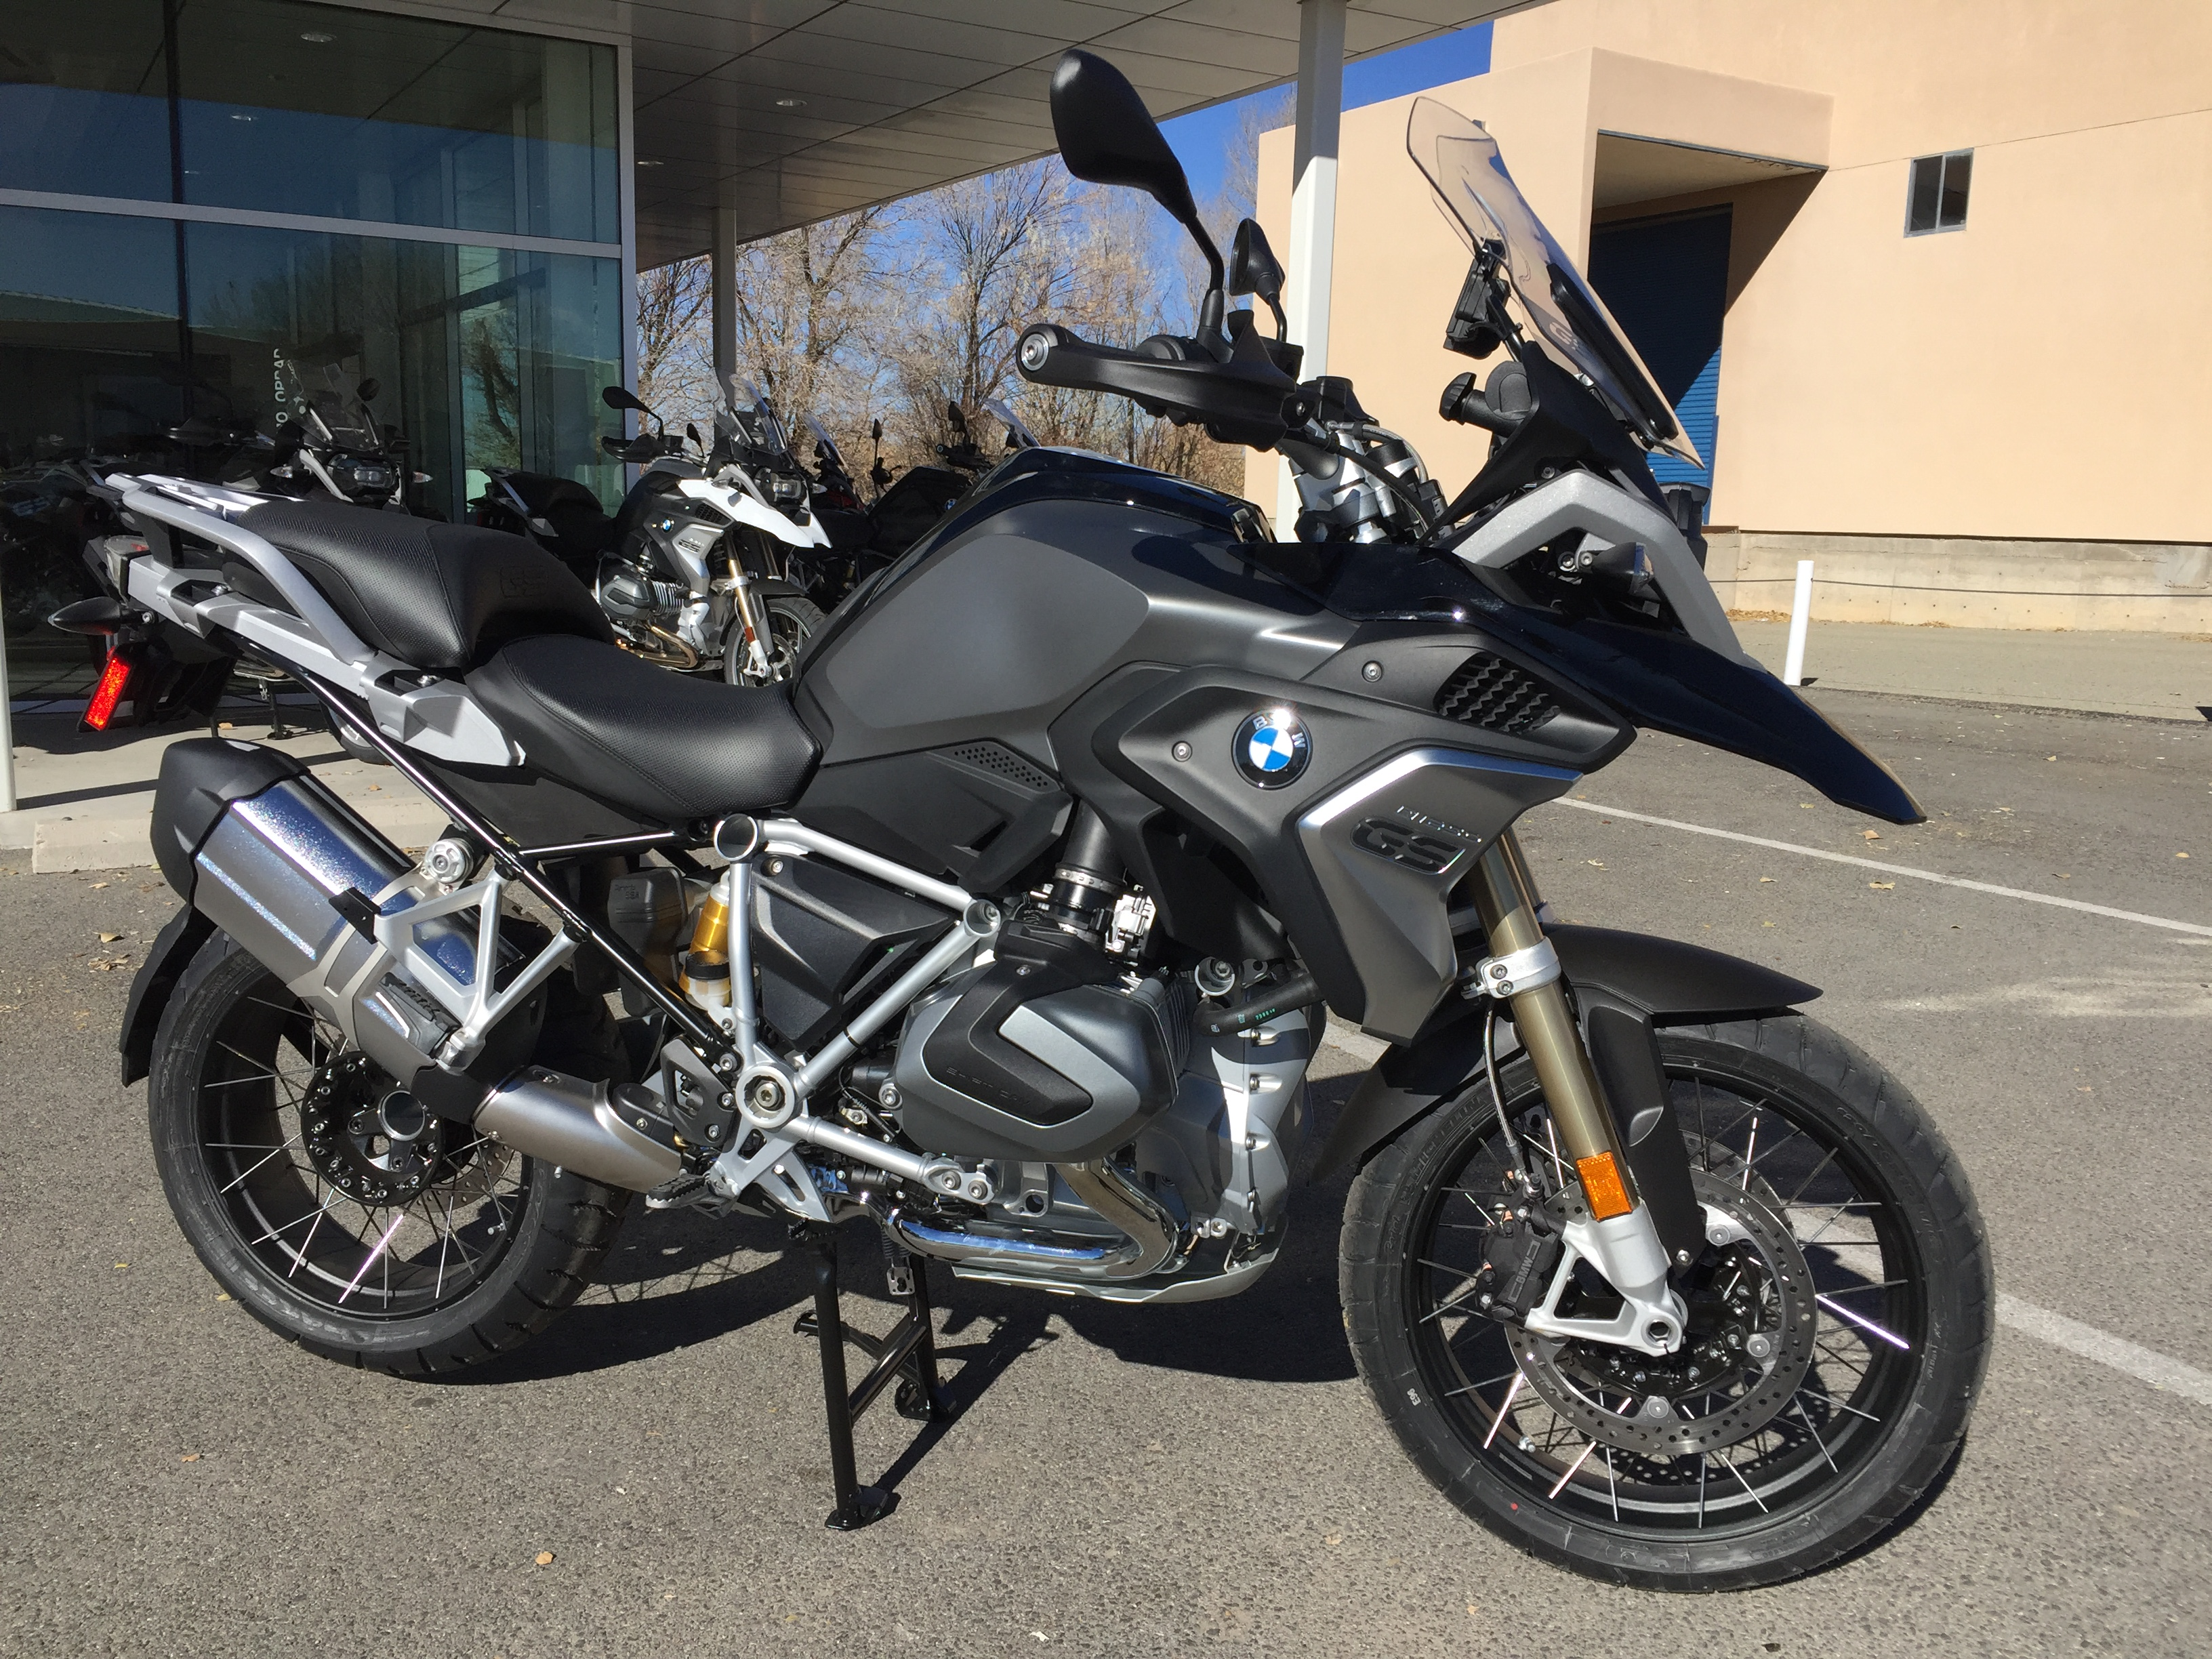 new bmw motorcycles r1250gs santa fe bmw motorcycles. Black Bedroom Furniture Sets. Home Design Ideas